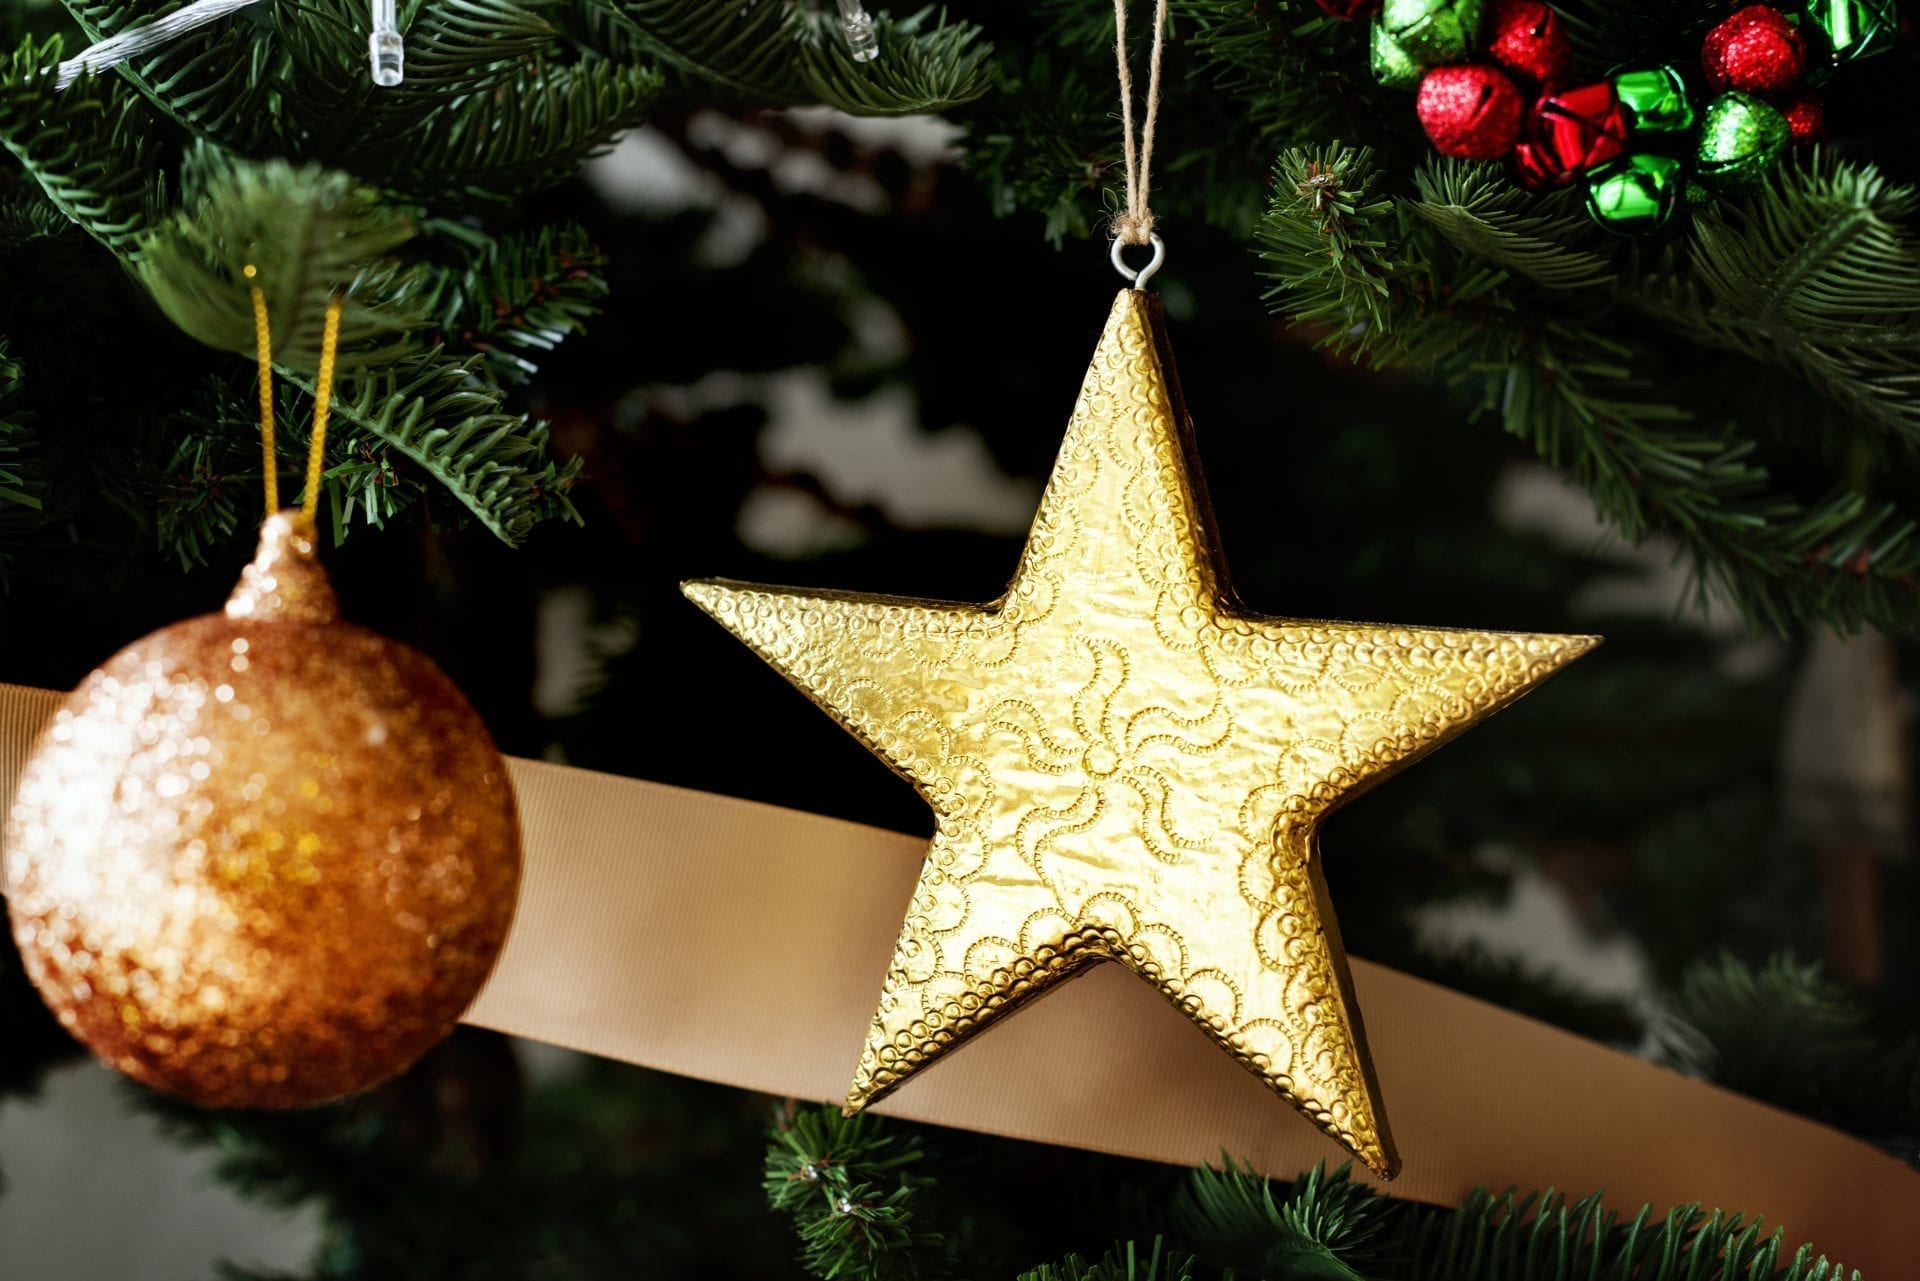 Scientific and practical ways to manage stress and the festive season